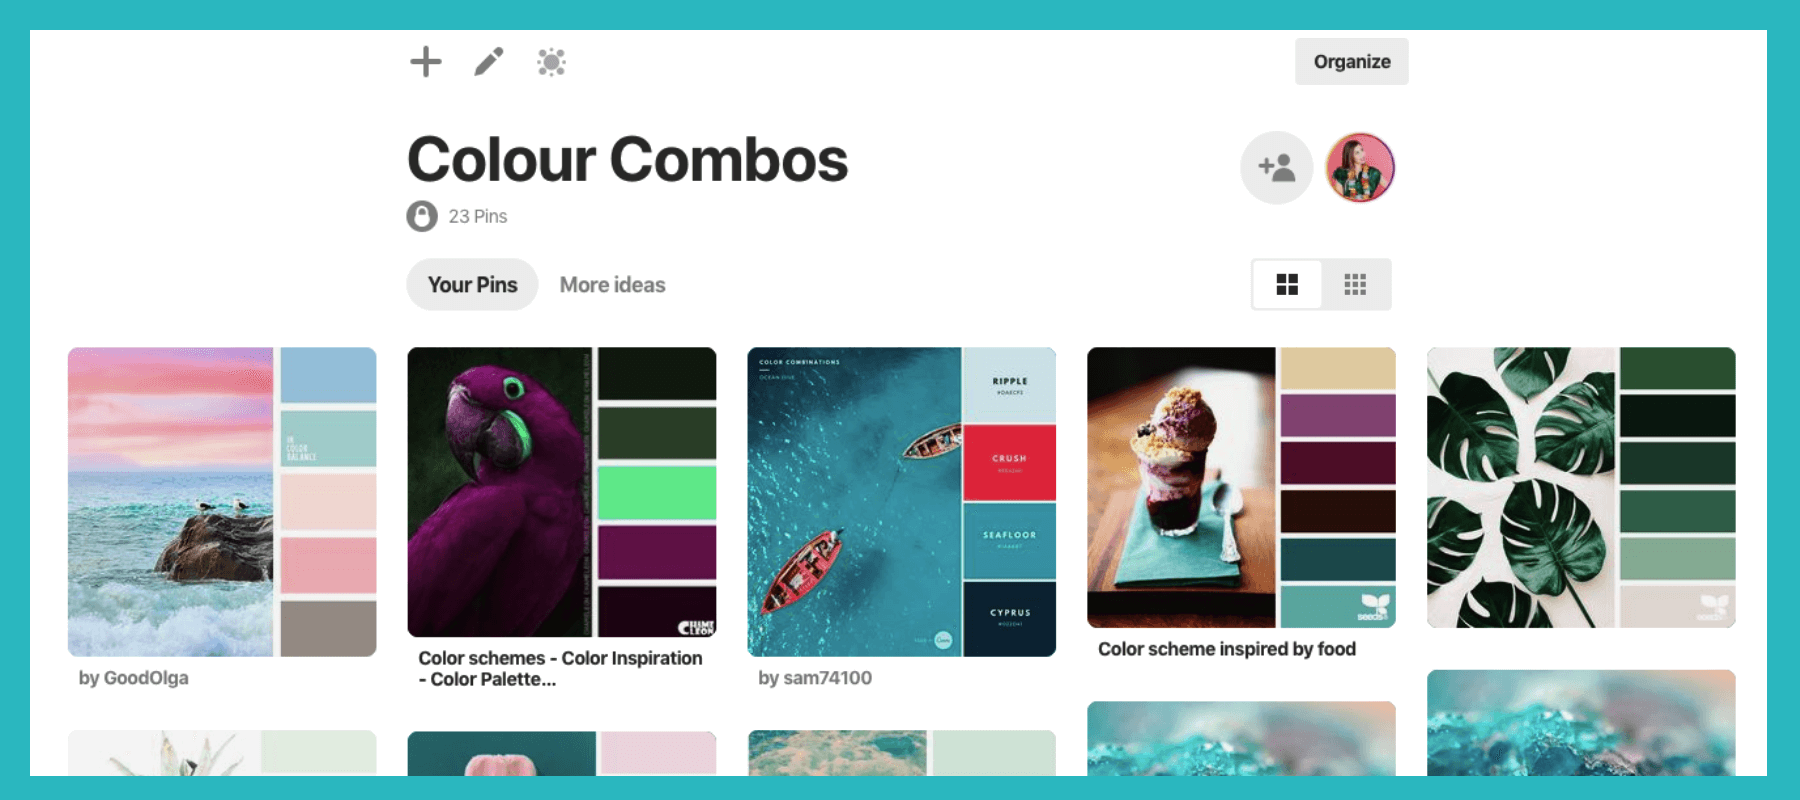 Here's what my secret color combos mood board on Pinterest looks like… Ahhh - it's beautiful.